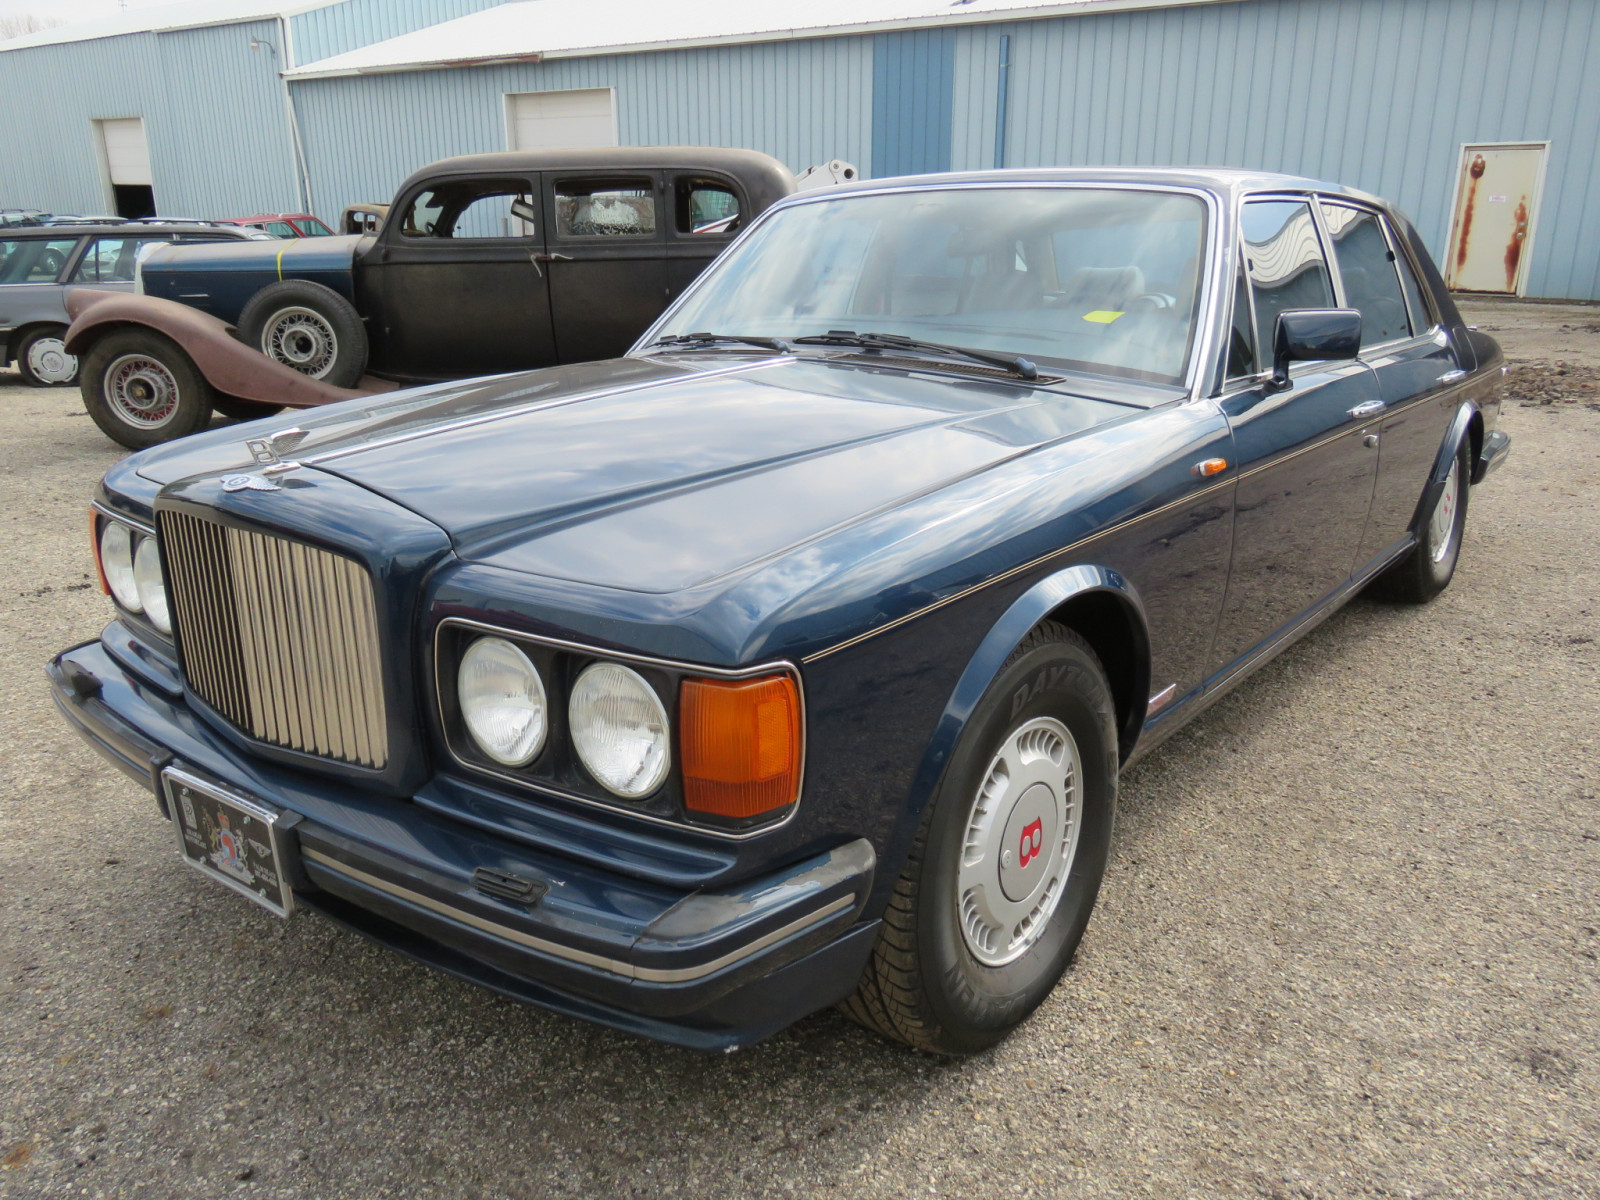 1988 Bentley Turbo R 4dr Sedan - Image 18